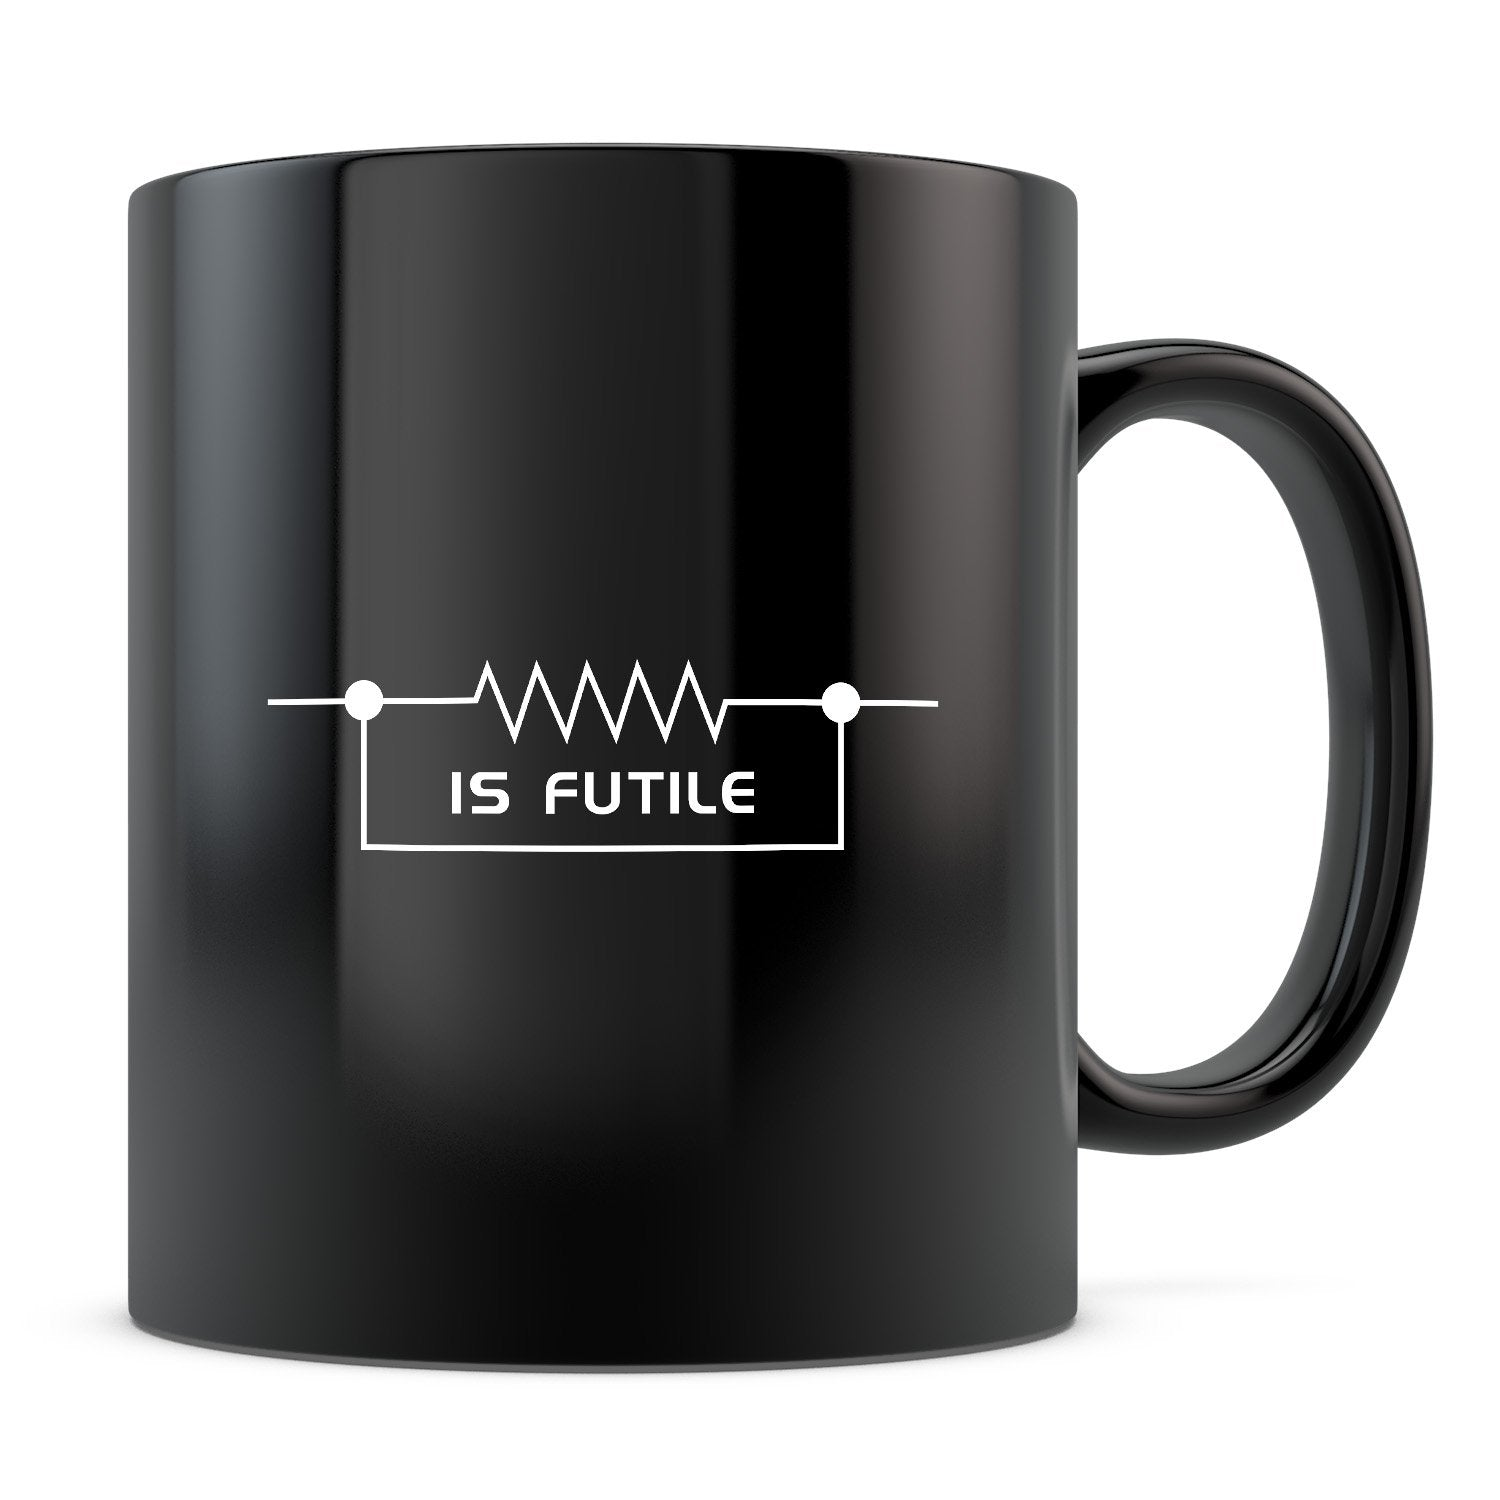 Resistance - 11oz/15oz Black Mug-Coffee Mug-CustomCat-11oz Mug-Black-